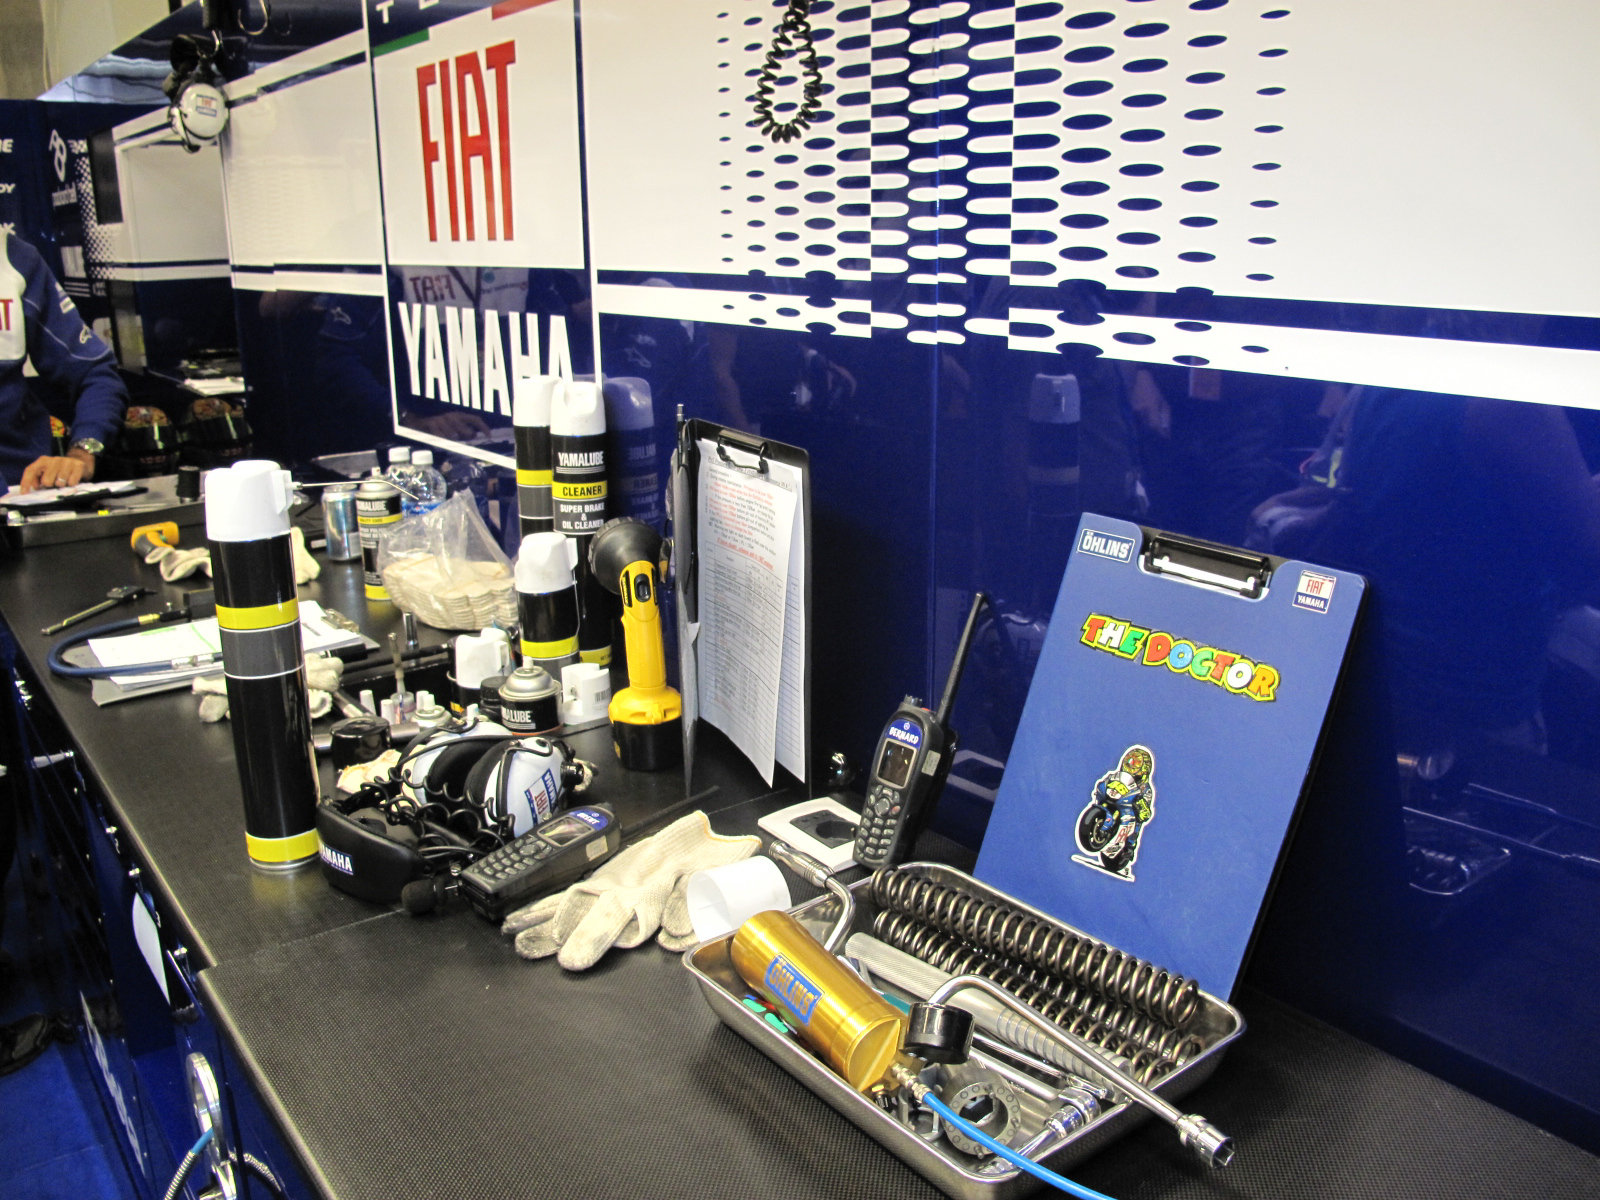 Yamaha pit stop at mazda raceways picture 309963 for Yamaha parts pit stop